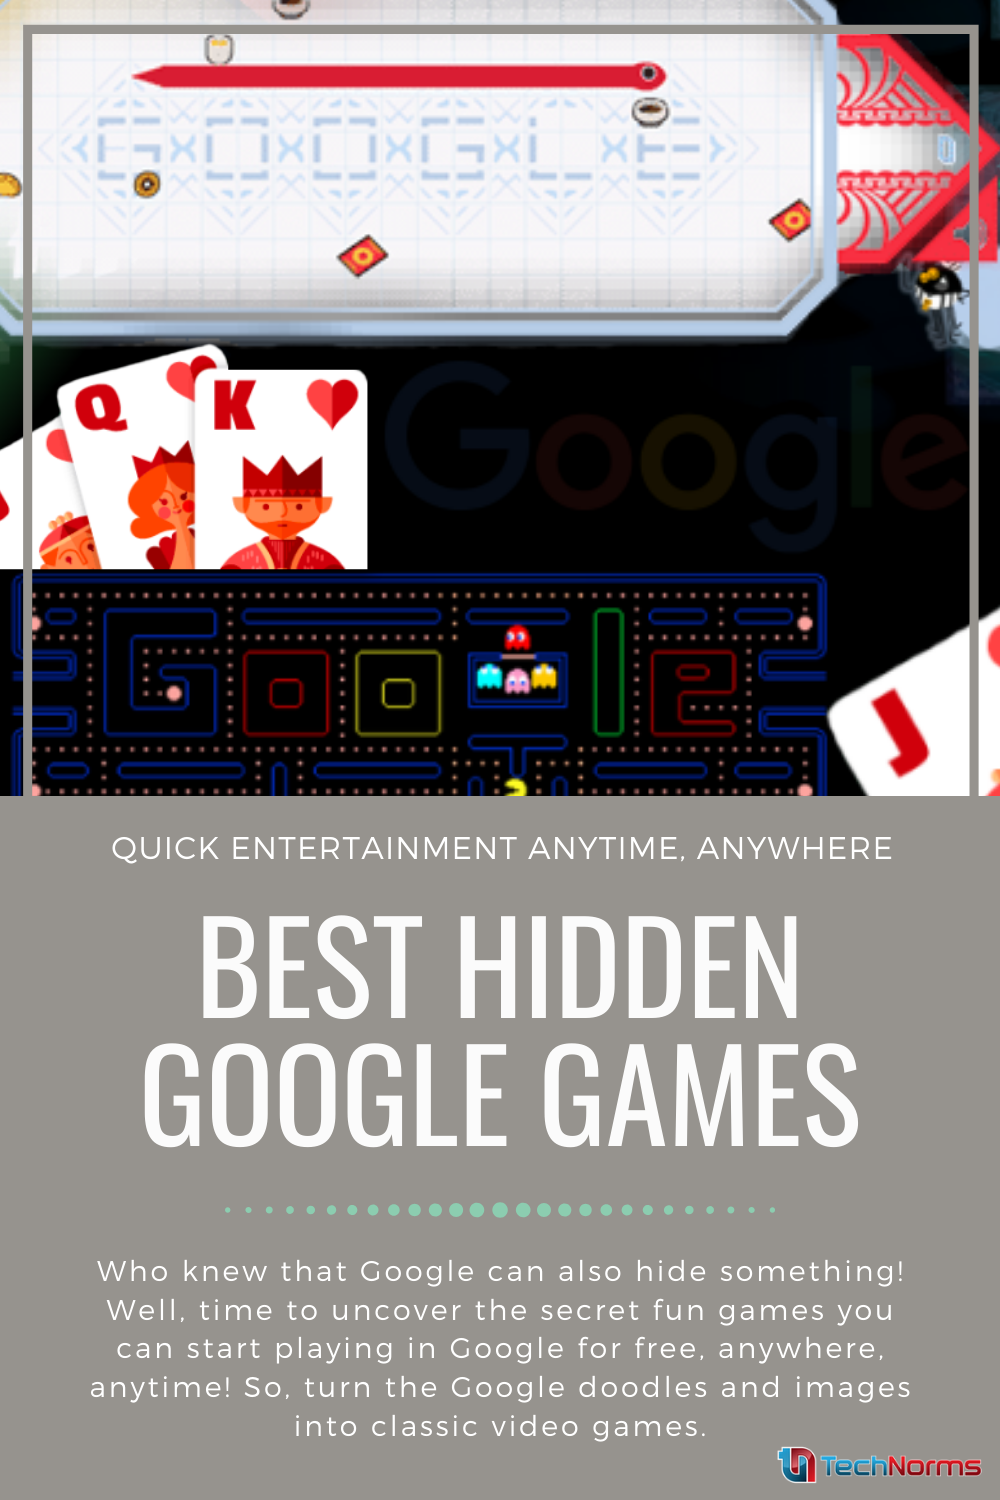 13 Best Hidden Google Games For Fun Gameplay Anytime